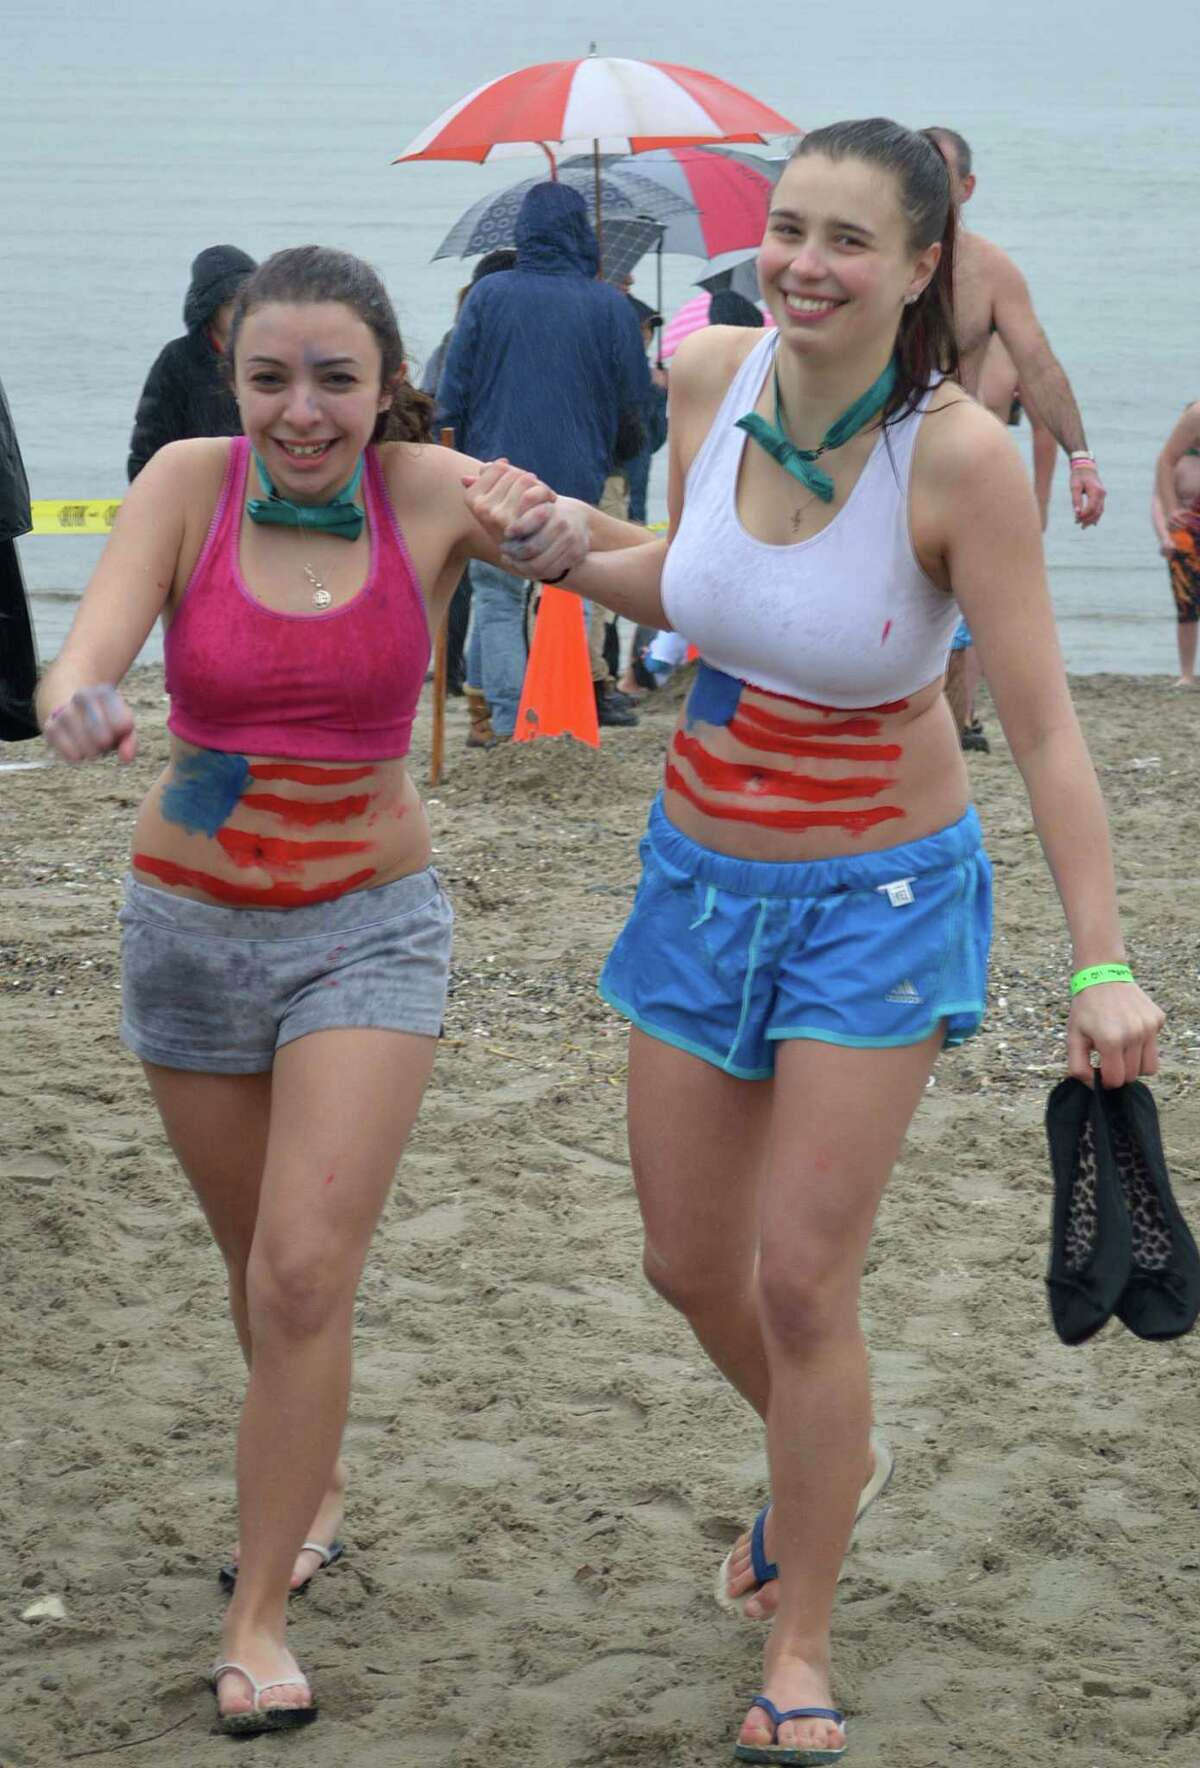 Victoria Lettiero, left, and her friend Julia Gonifiantiti, came from Sacred Heart University to Compo Beach for the Penguin Plunge benefiting the Special Olympics.